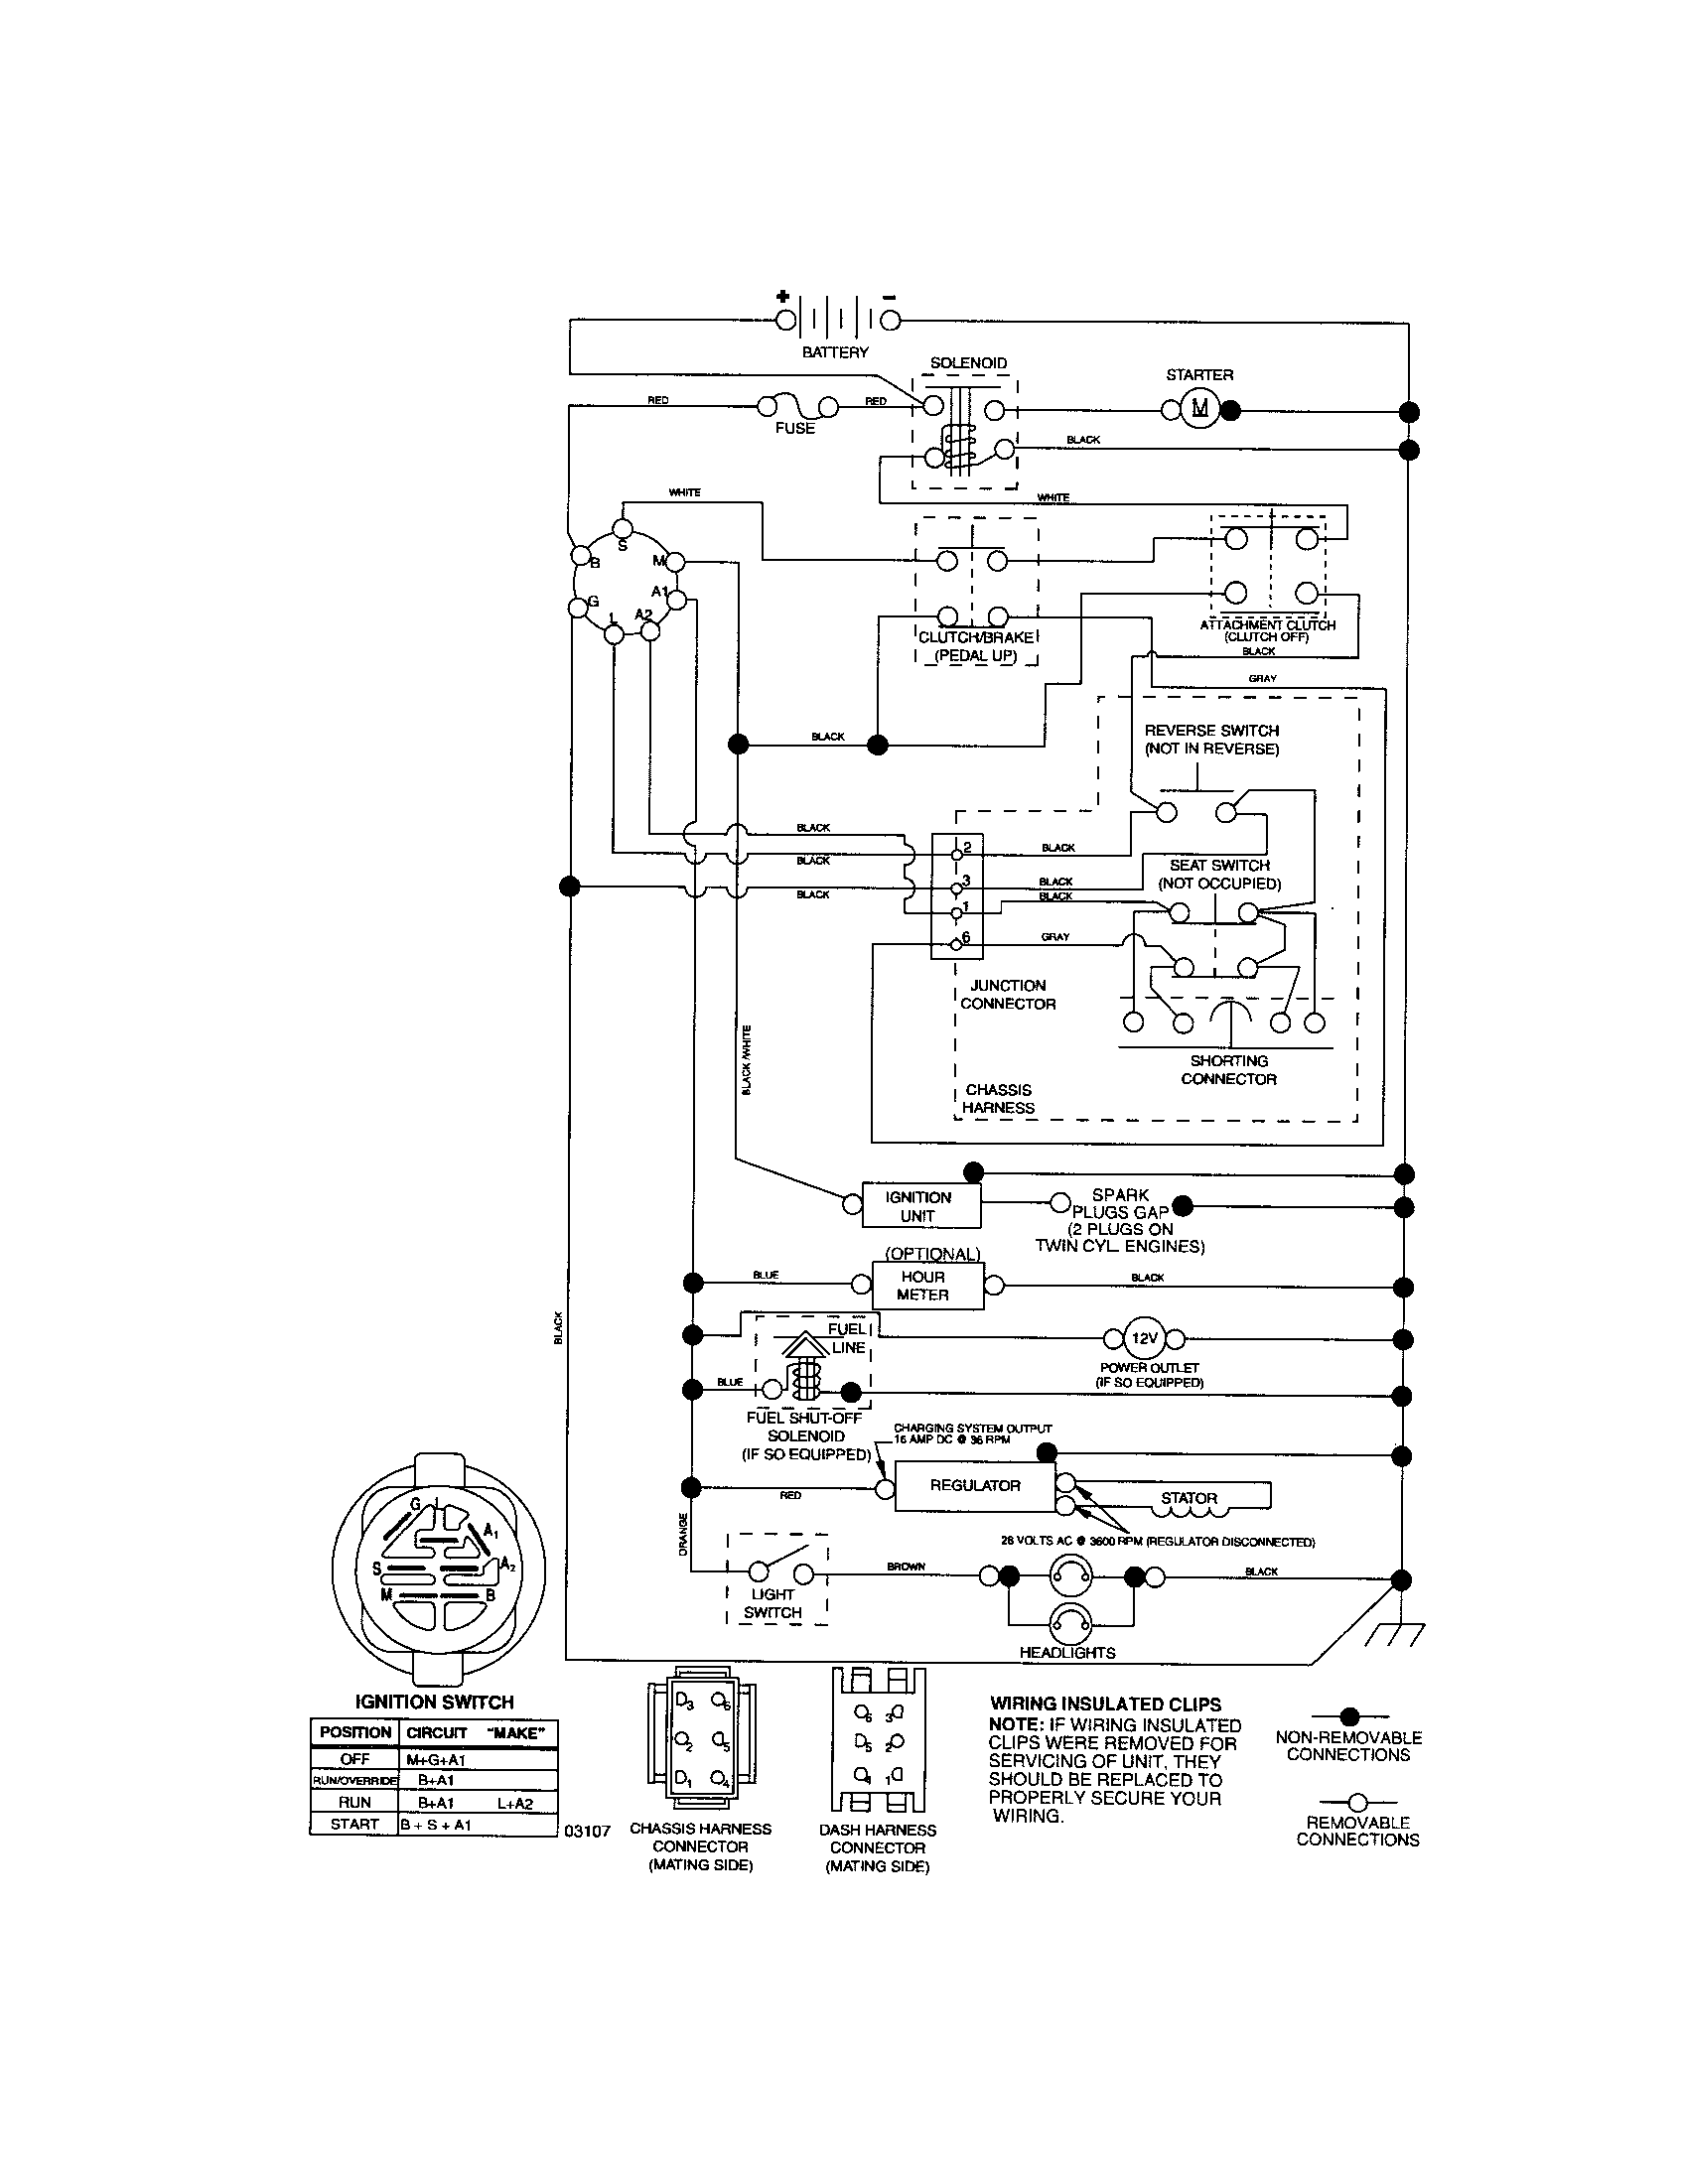 Tractor Battery Wiring Diagram - Wire Data • on farmall magneto diagram, farmall 400 wiring diagram, fordson dexta 12 volt wiring diagram, farmall 450 wiring diagram, kitchen stove wiring diagram, farmall h hydraulics diagram, farmall h parts diagram, 12v wiring diagram, international 244 tractor diagram, bobcat wiring diagram, farmall 706 wiring-diagram, farmall super a hydraulic system diagram, case wiring diagram, farmall m distributor diagram, farmall h transmission diagram, farmall h carburetor diagram, 504 farmall gas wiring diagram, farmall m wiring diagram, farmall h electrical diagram, farmall tractors history,